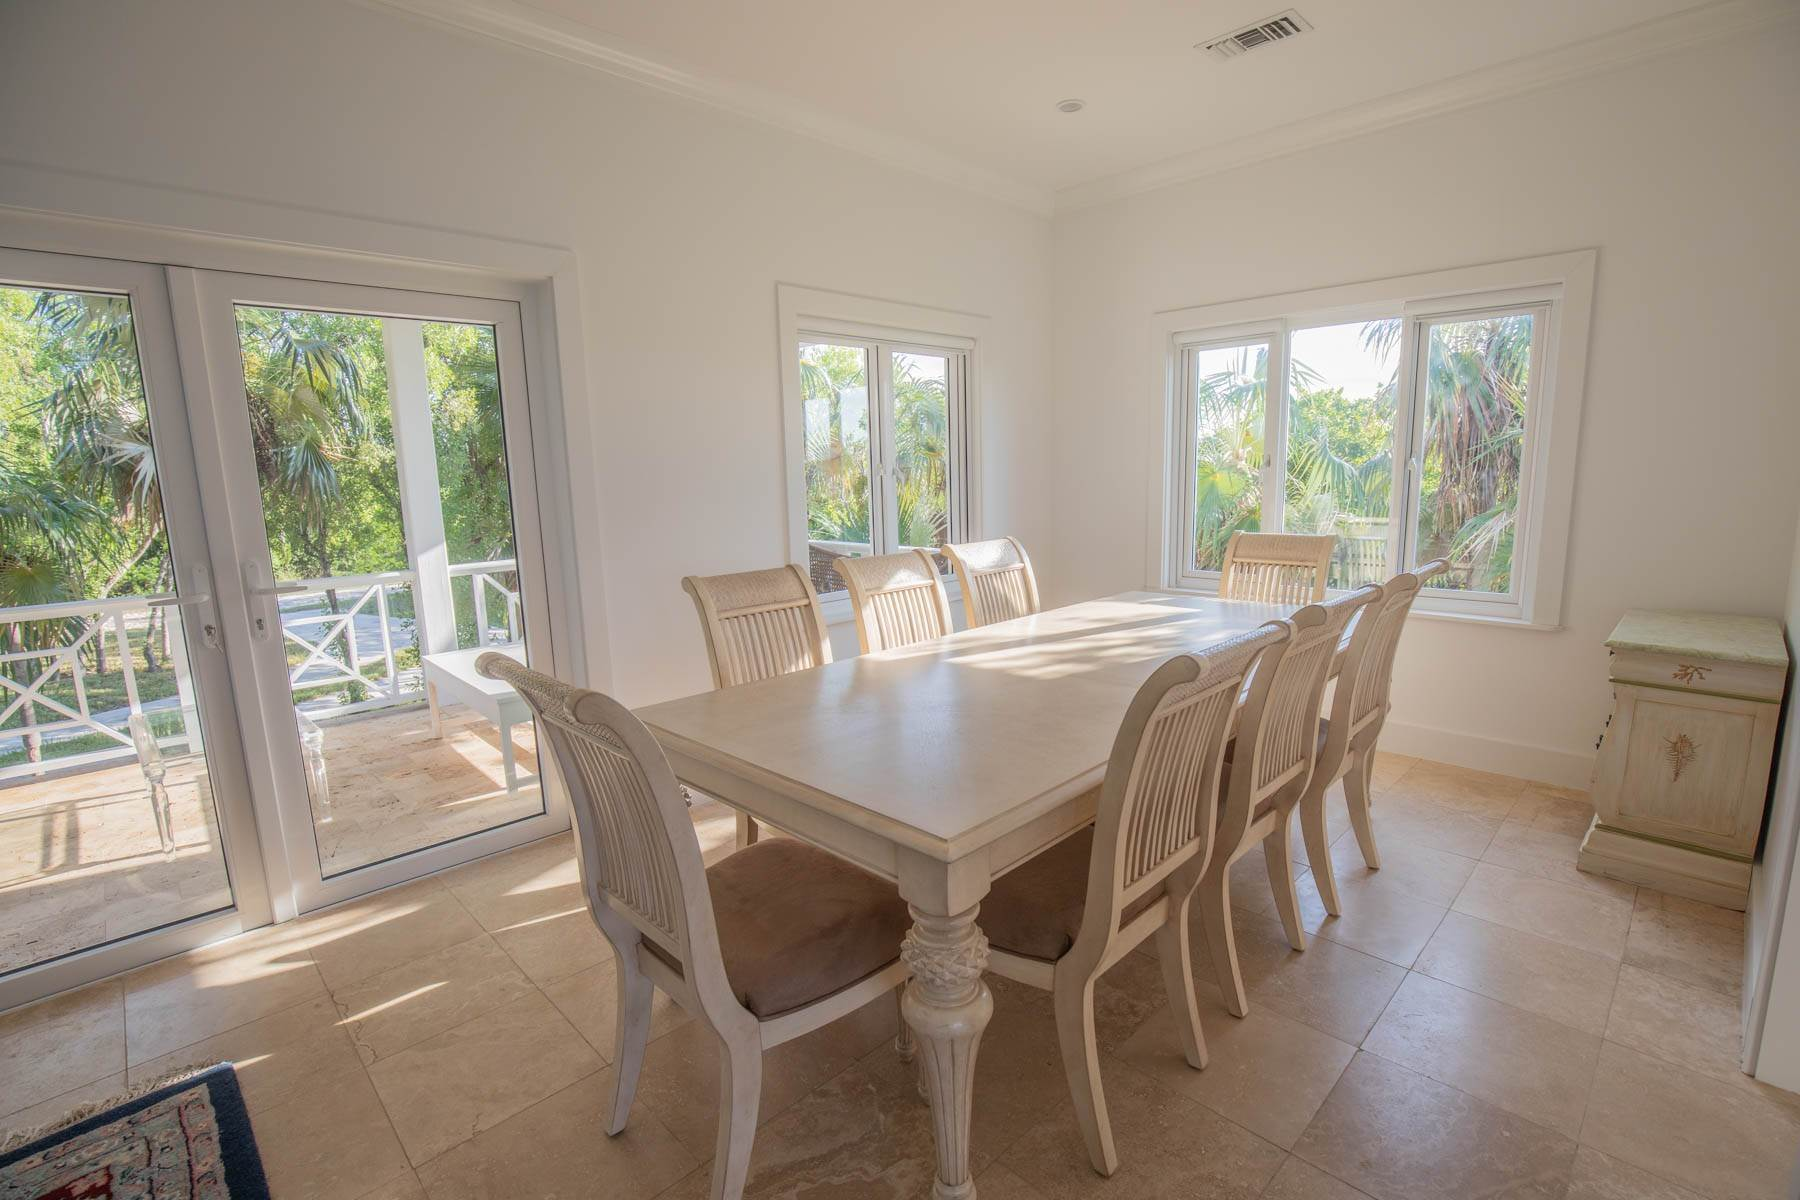 4. Single Family Homes for Sale at Savannah Sound Home - Windermere Island - MLS 44478 Windermere Island, Eleuthera, Bahamas